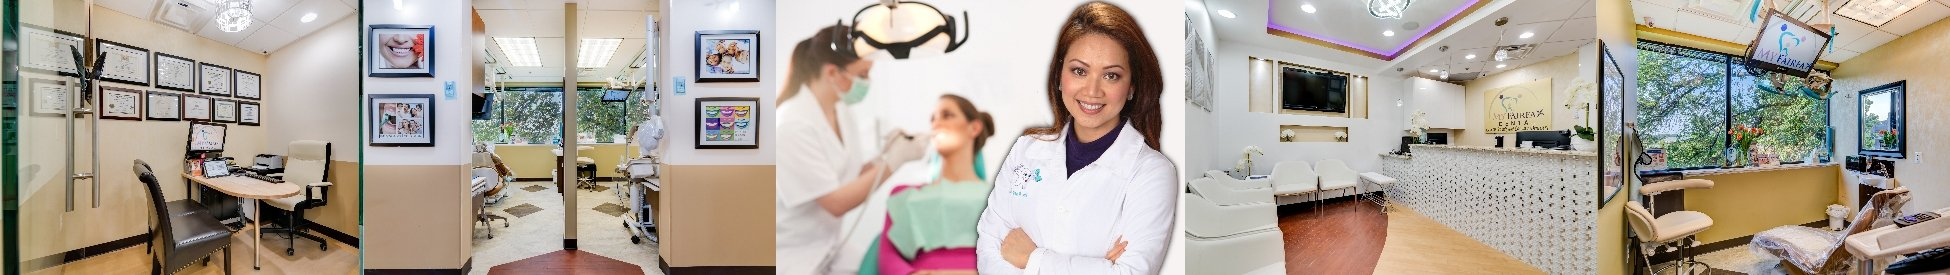 Invisalign Dentist in Fairfax, VA